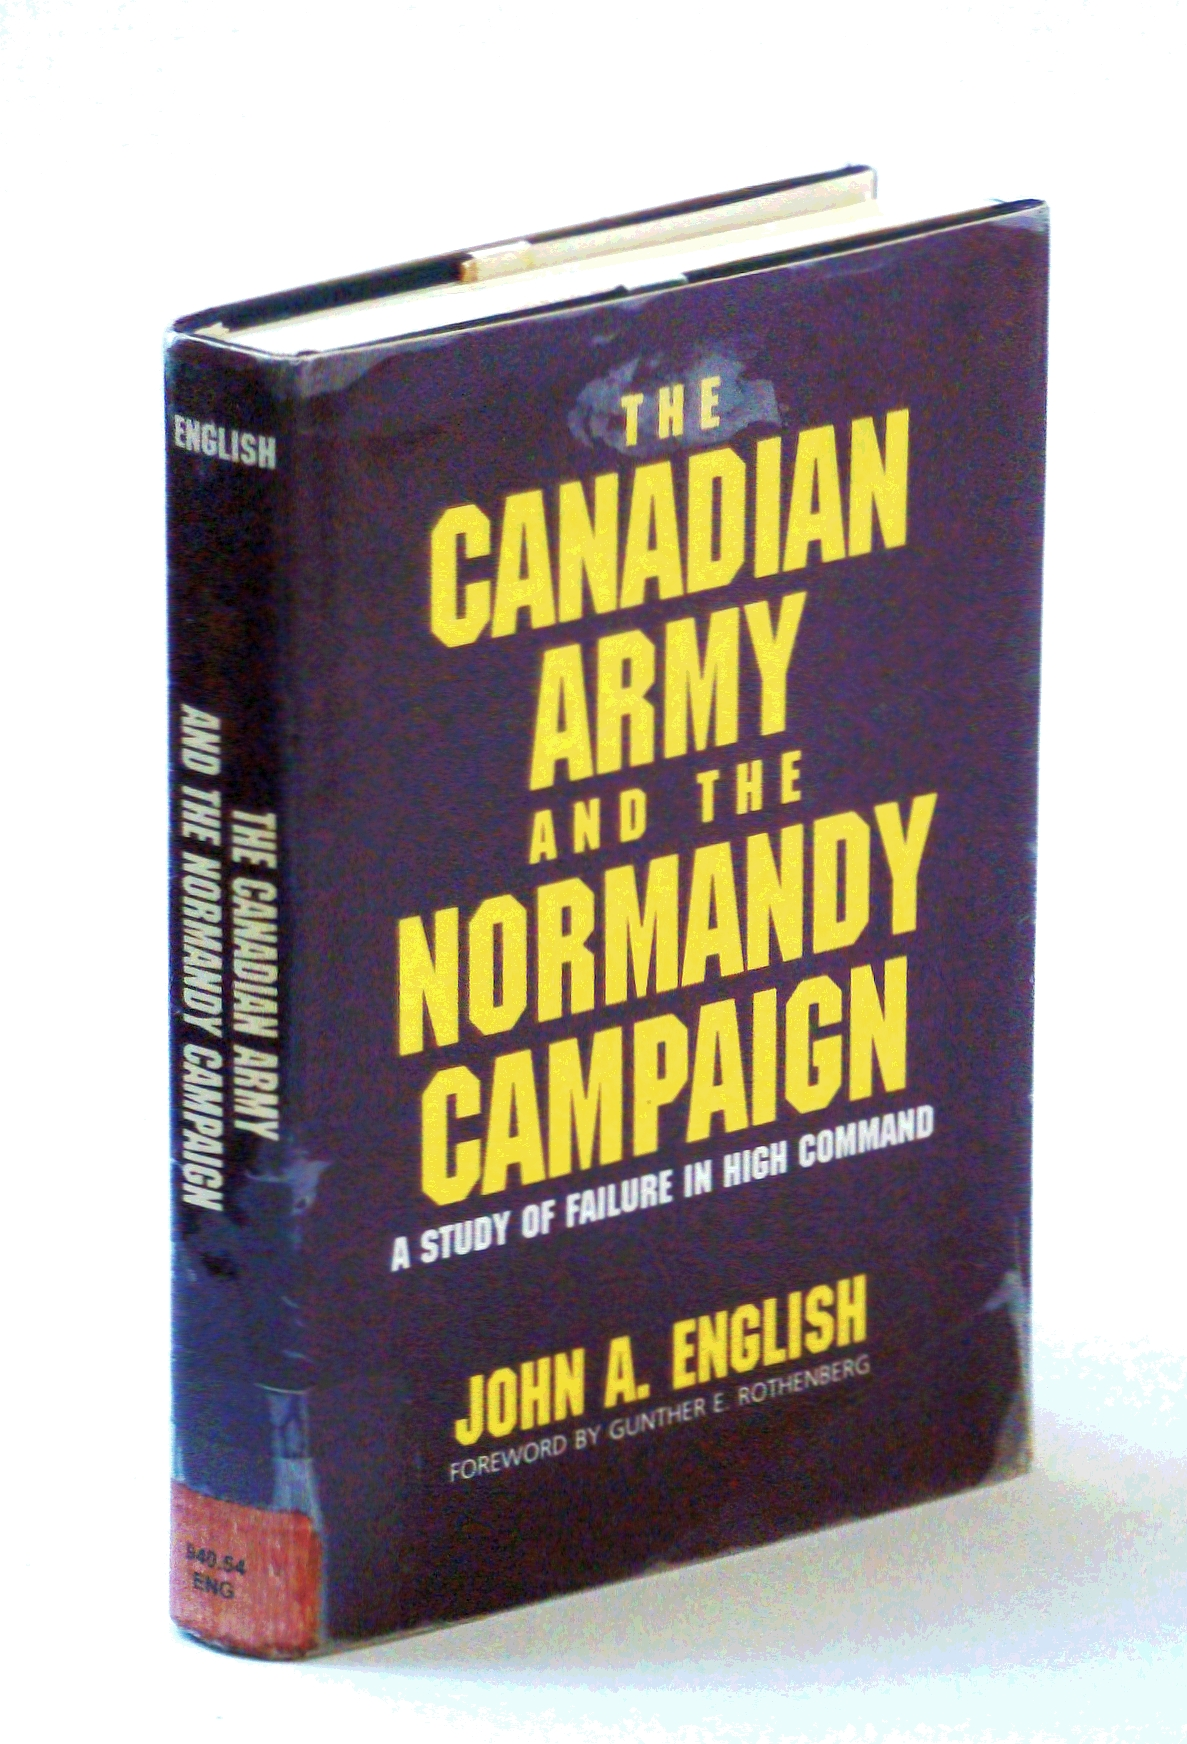 The Canadian Army and the Normandy Campaign: A Study of Failure in High Command